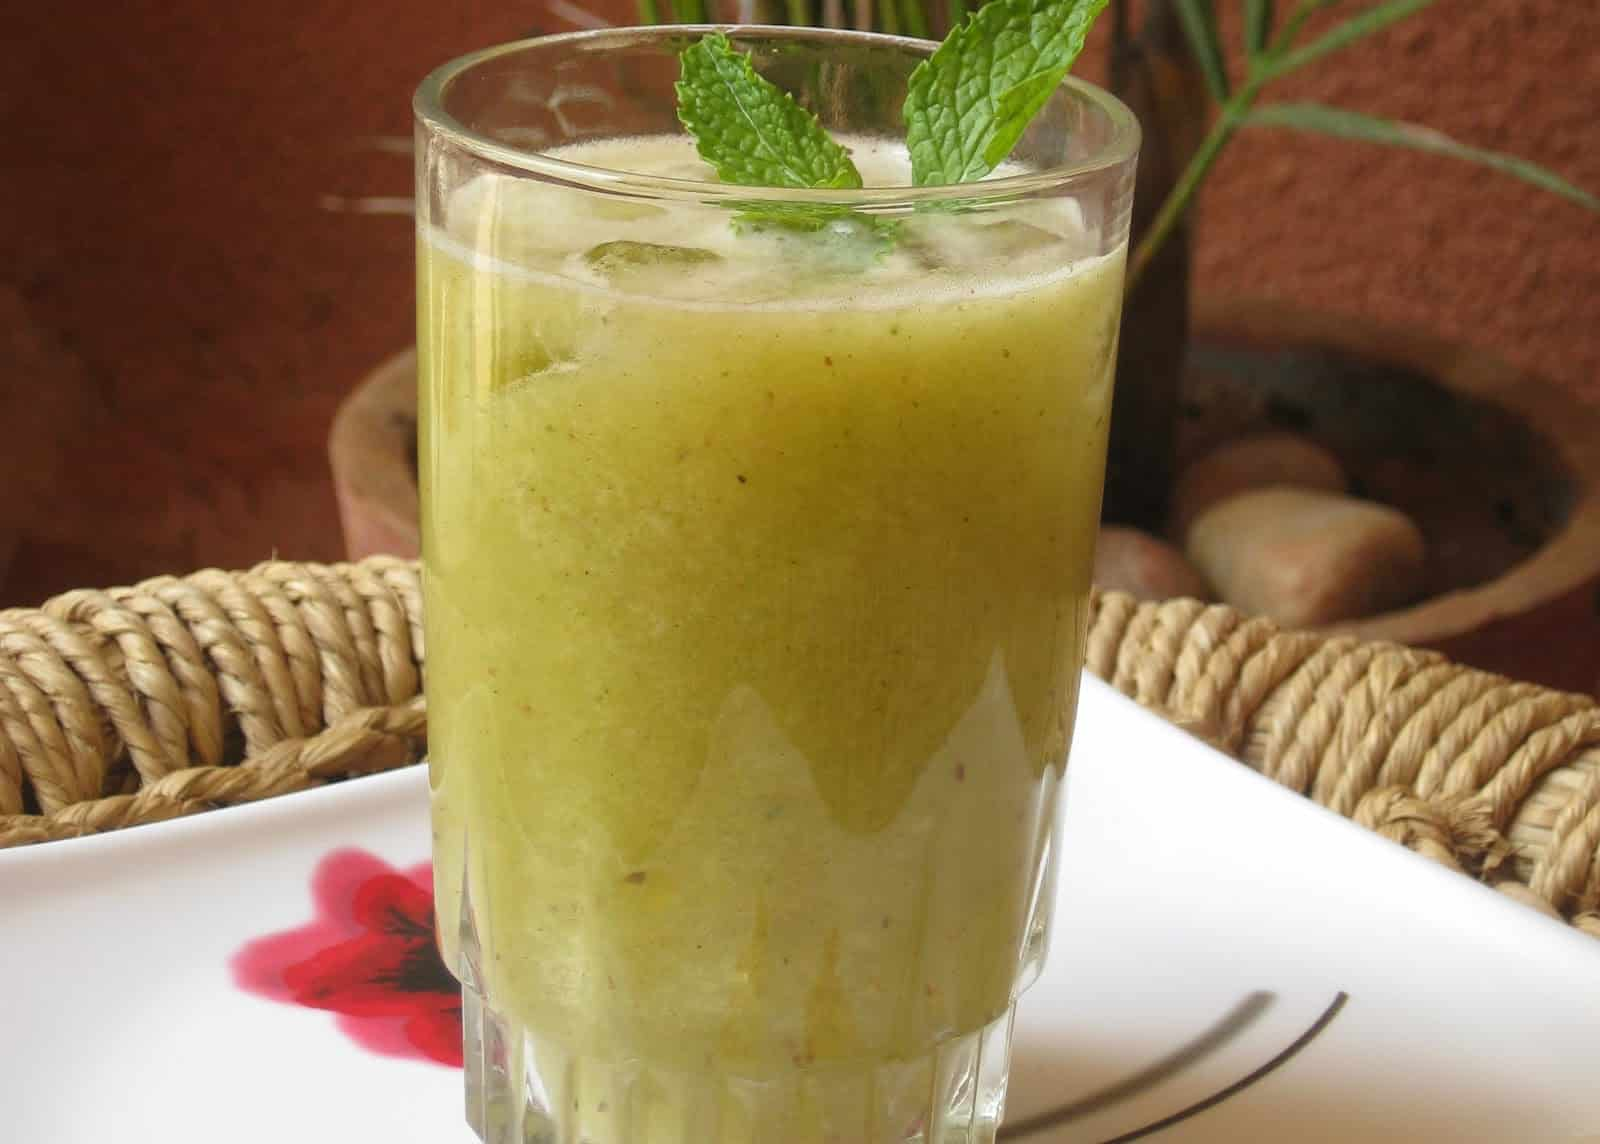 How to Make Raw Mango Juice Recipe(Aam Panna Juice)